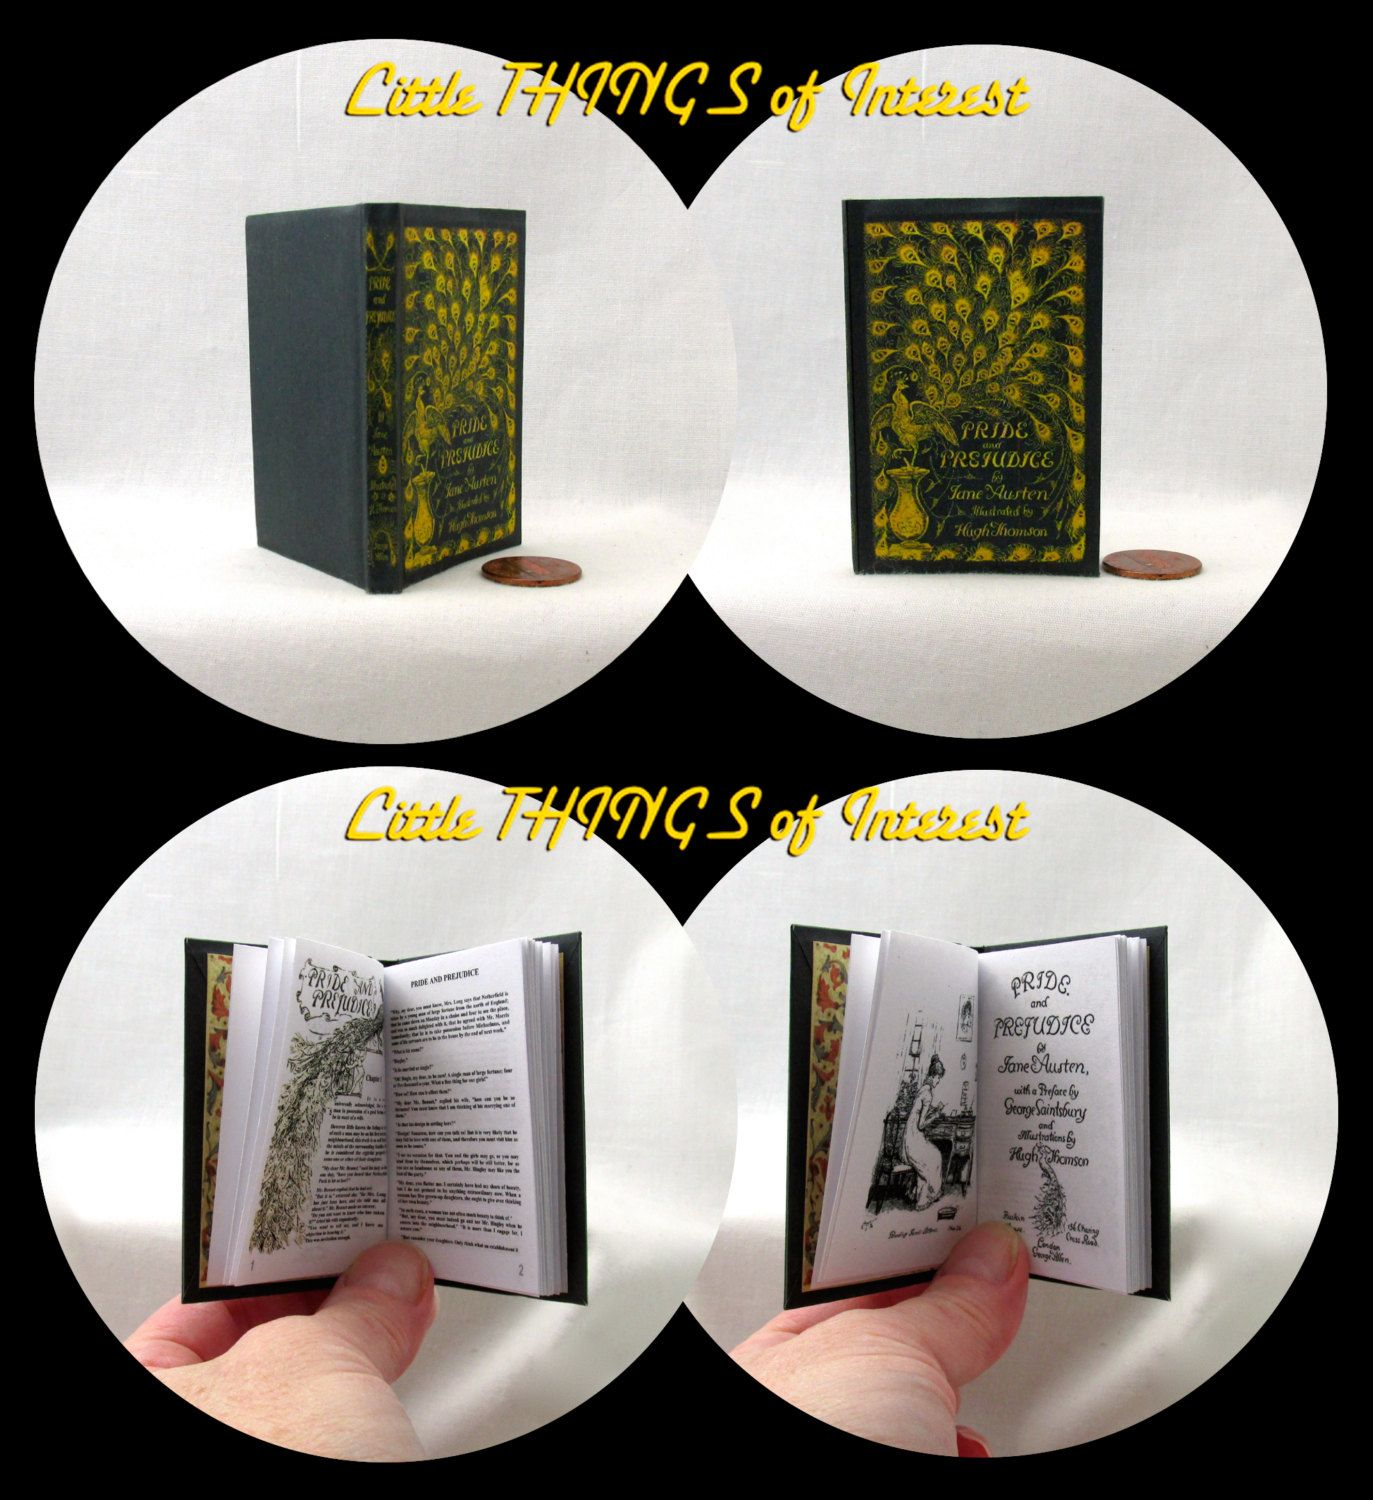 CHARMED BOOK OF SHADOWS Illustrated Book in 1:3 Scale Readable Magic Spell Book